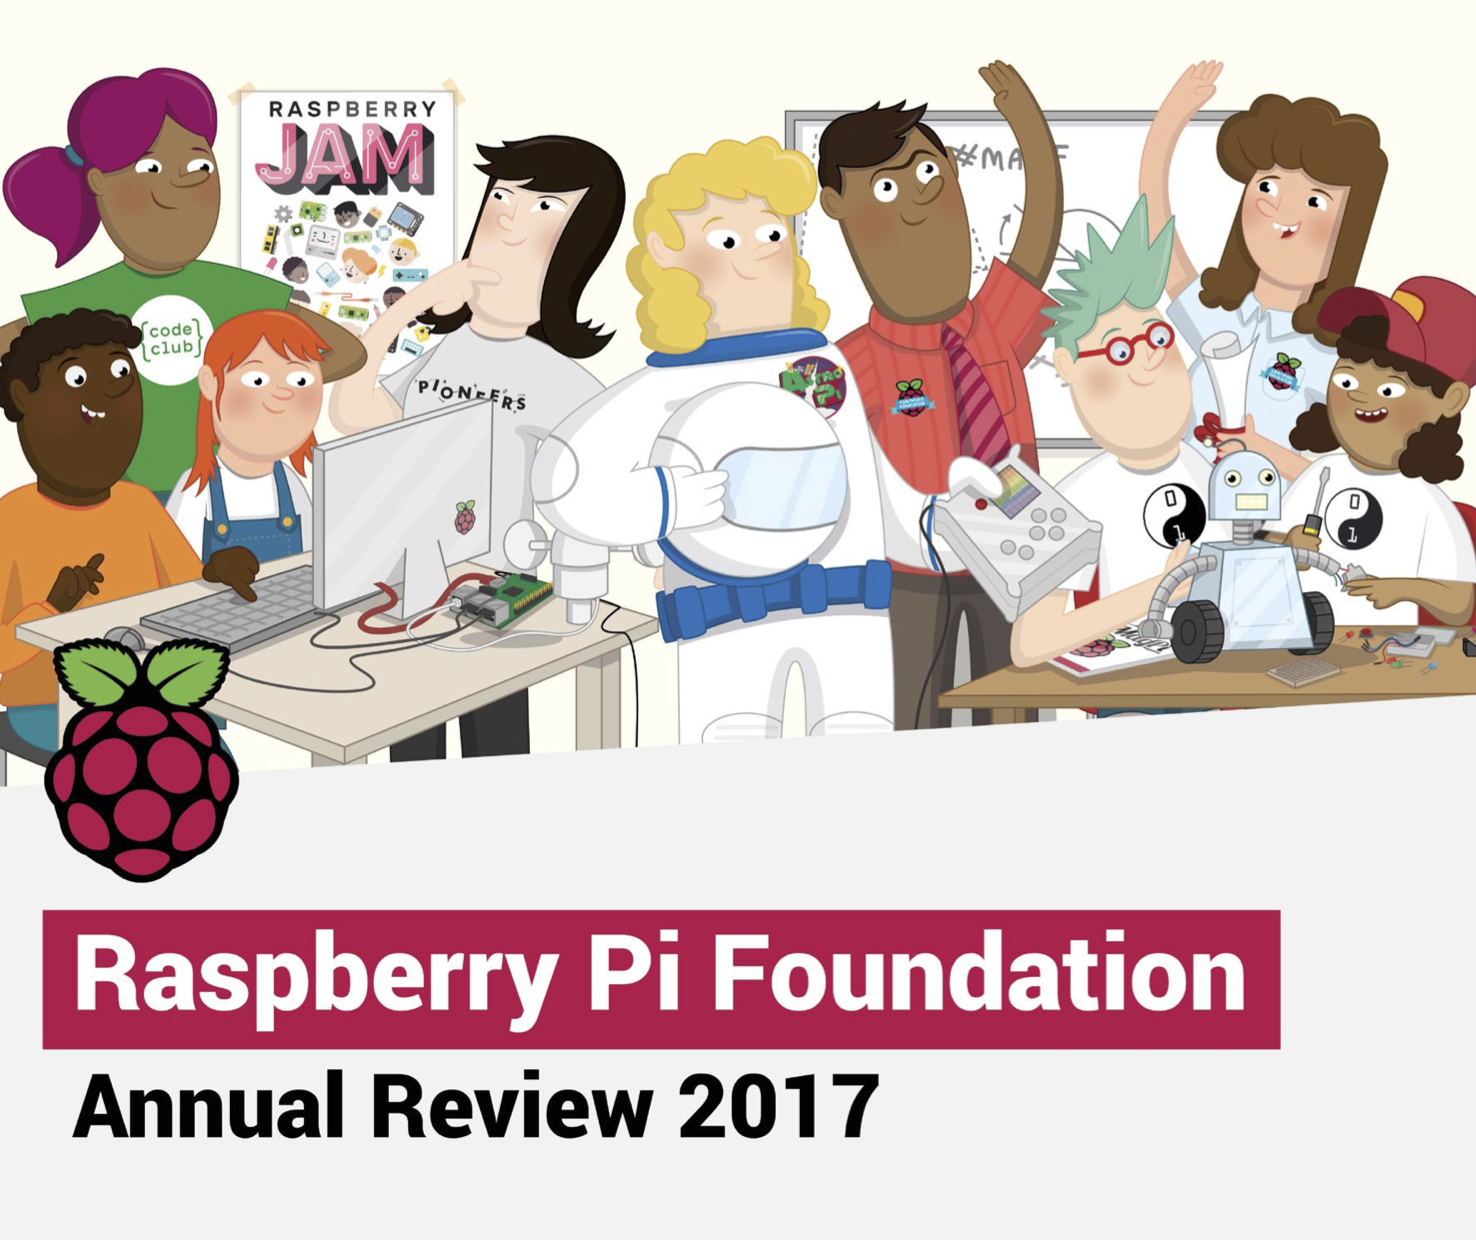 Our 2017 Annual Review